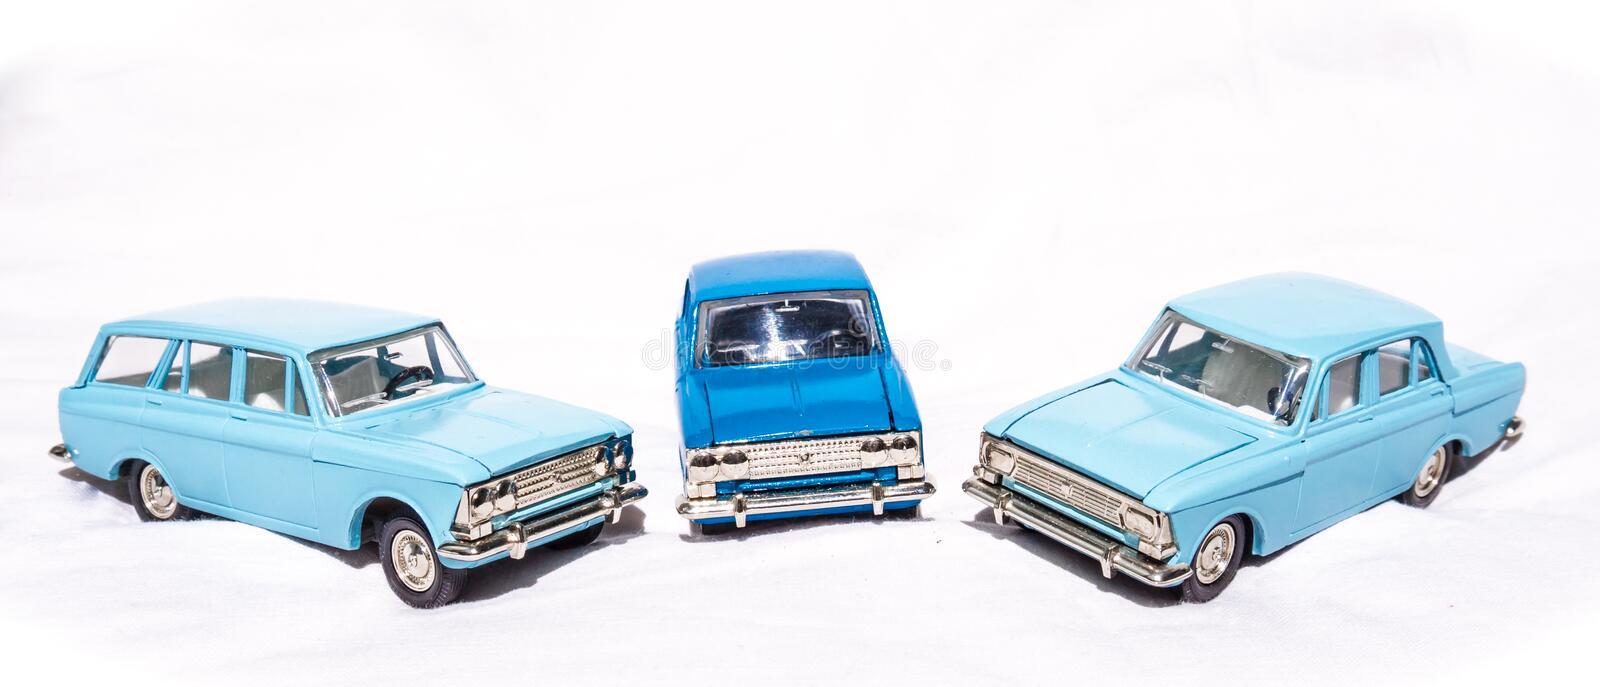 The old Soviet toys - metal models of cars. Model car Moskvich royalty free stock image